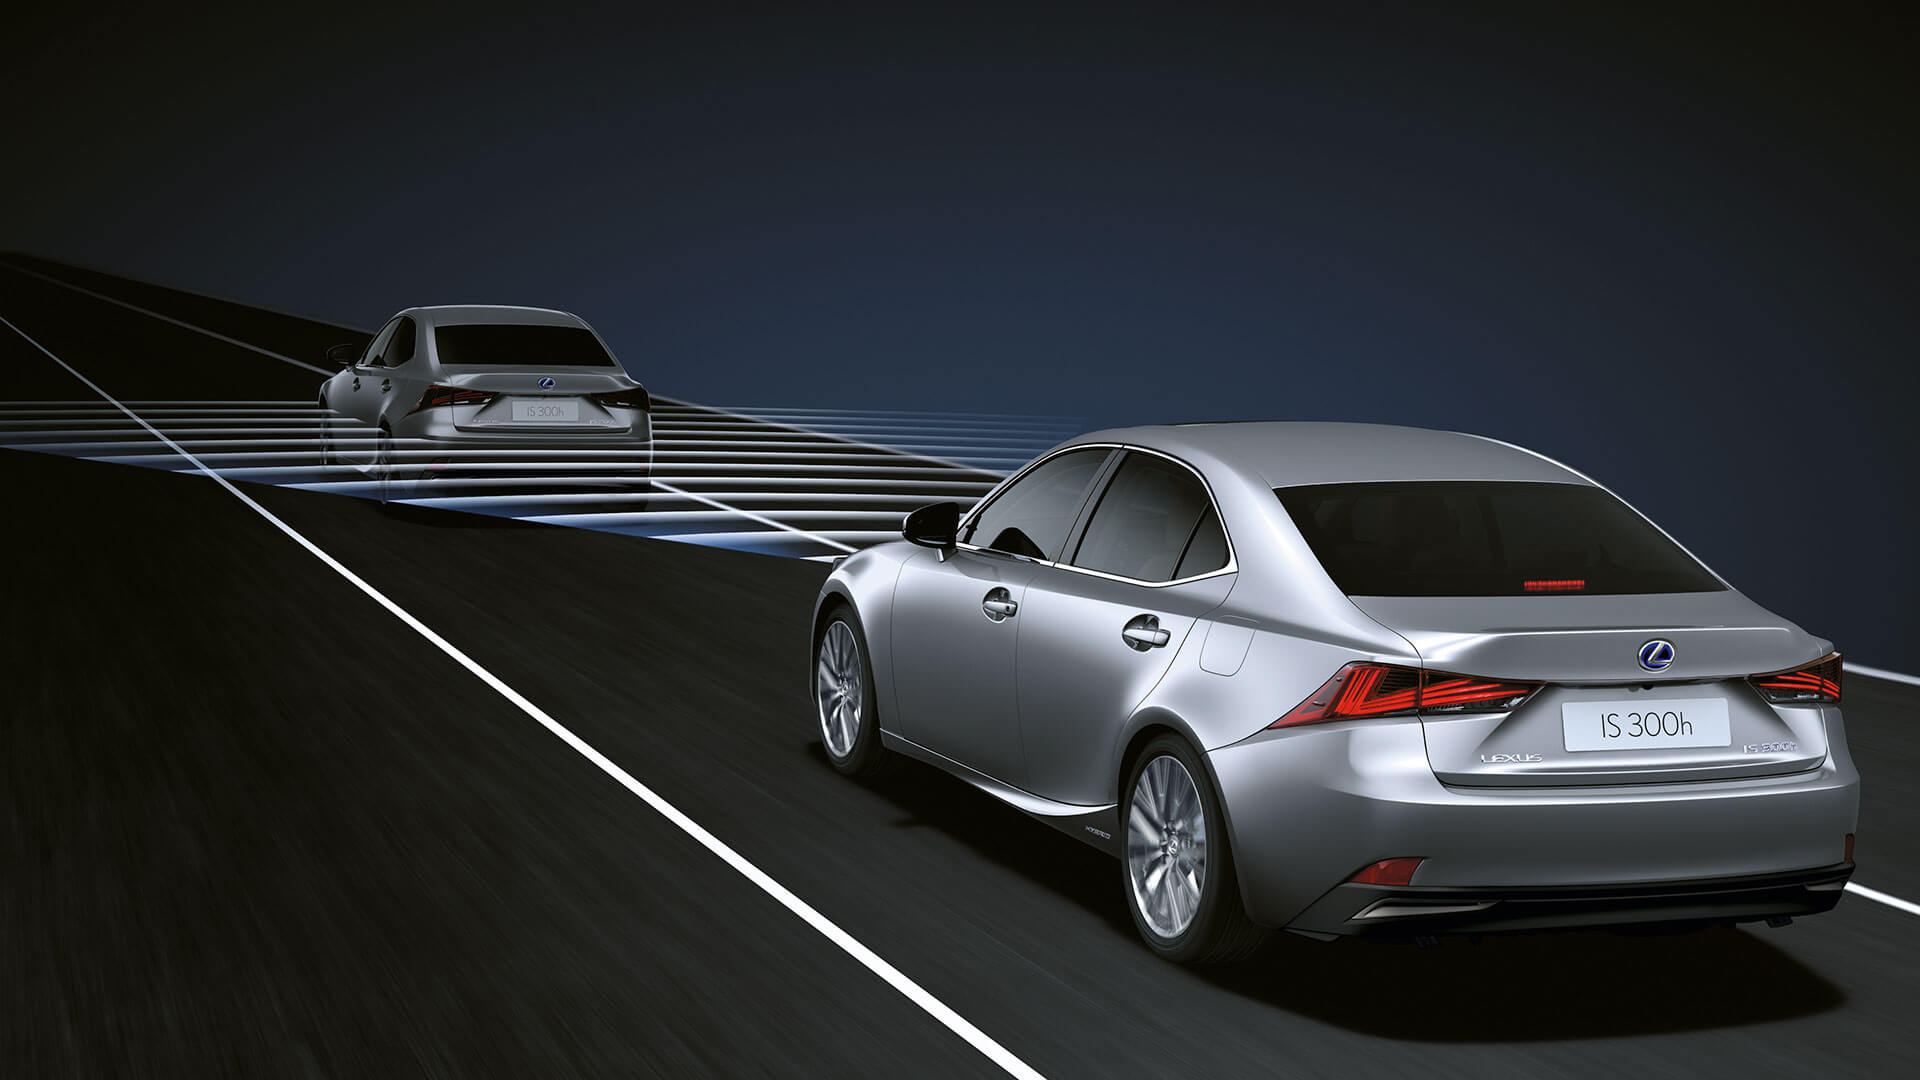 2017 lexus is 300h features cruise control